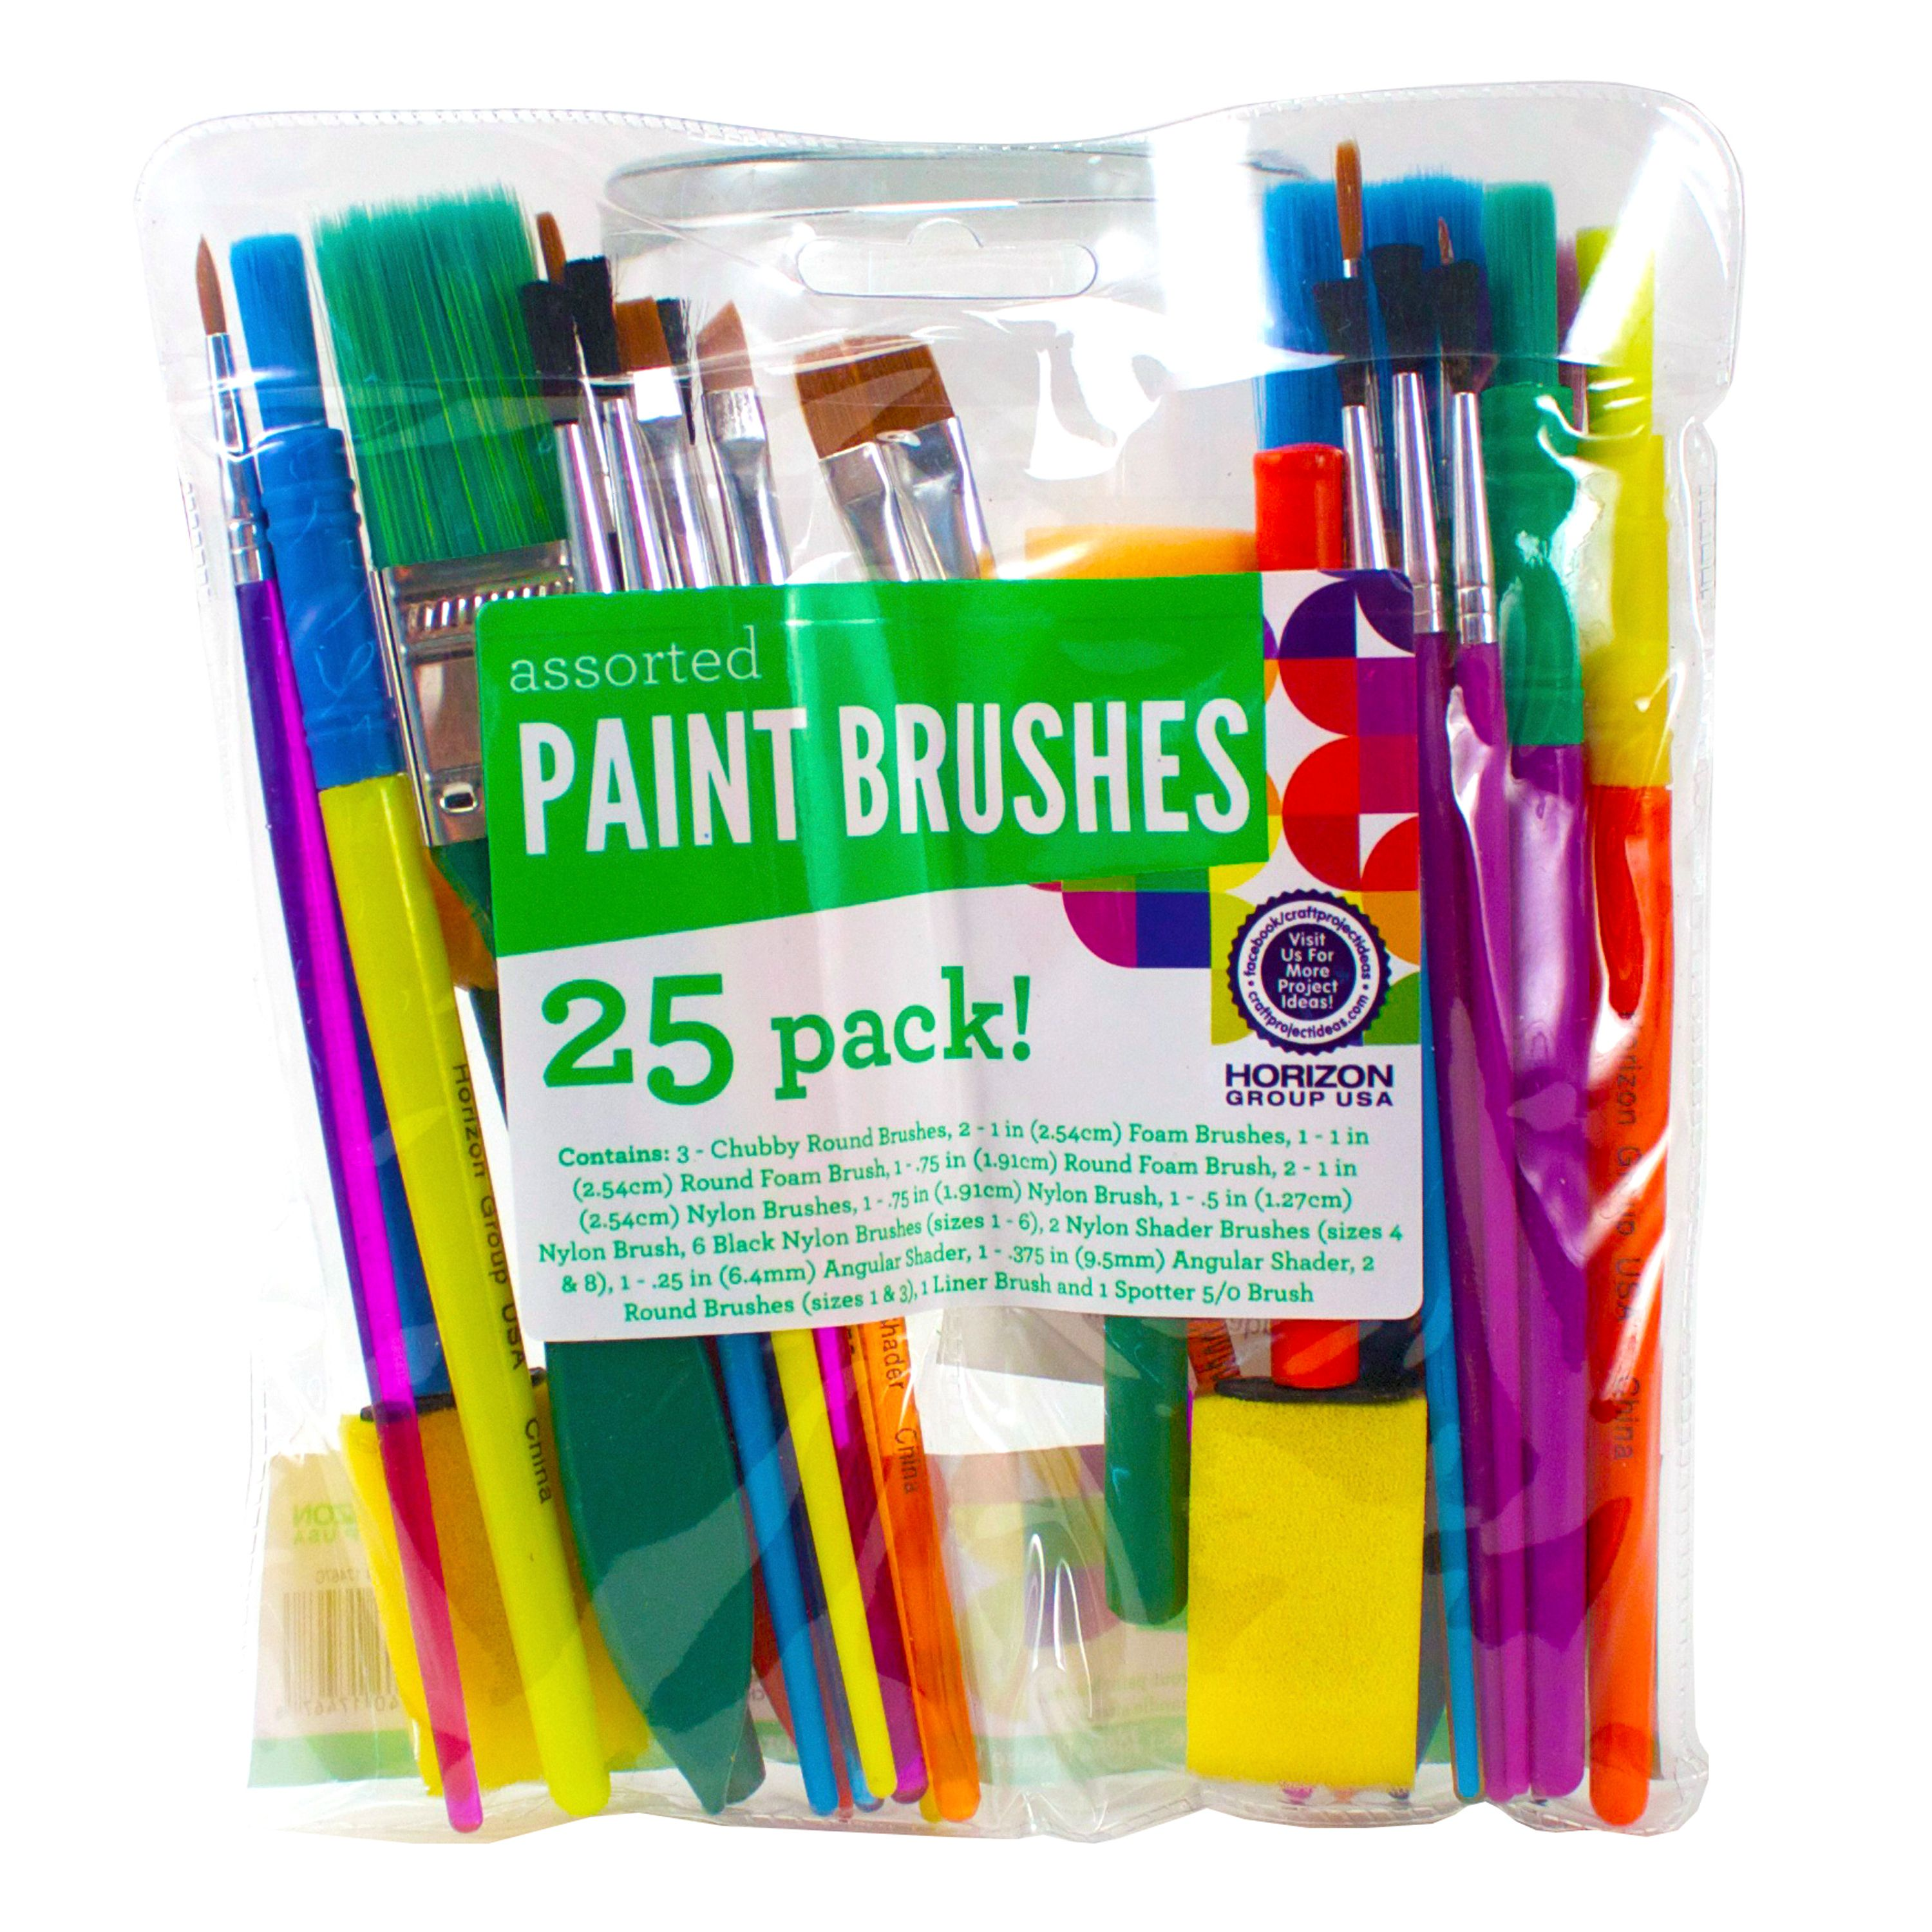 Assorted Paint Brushes, 25 Pack by Horizon Group USA